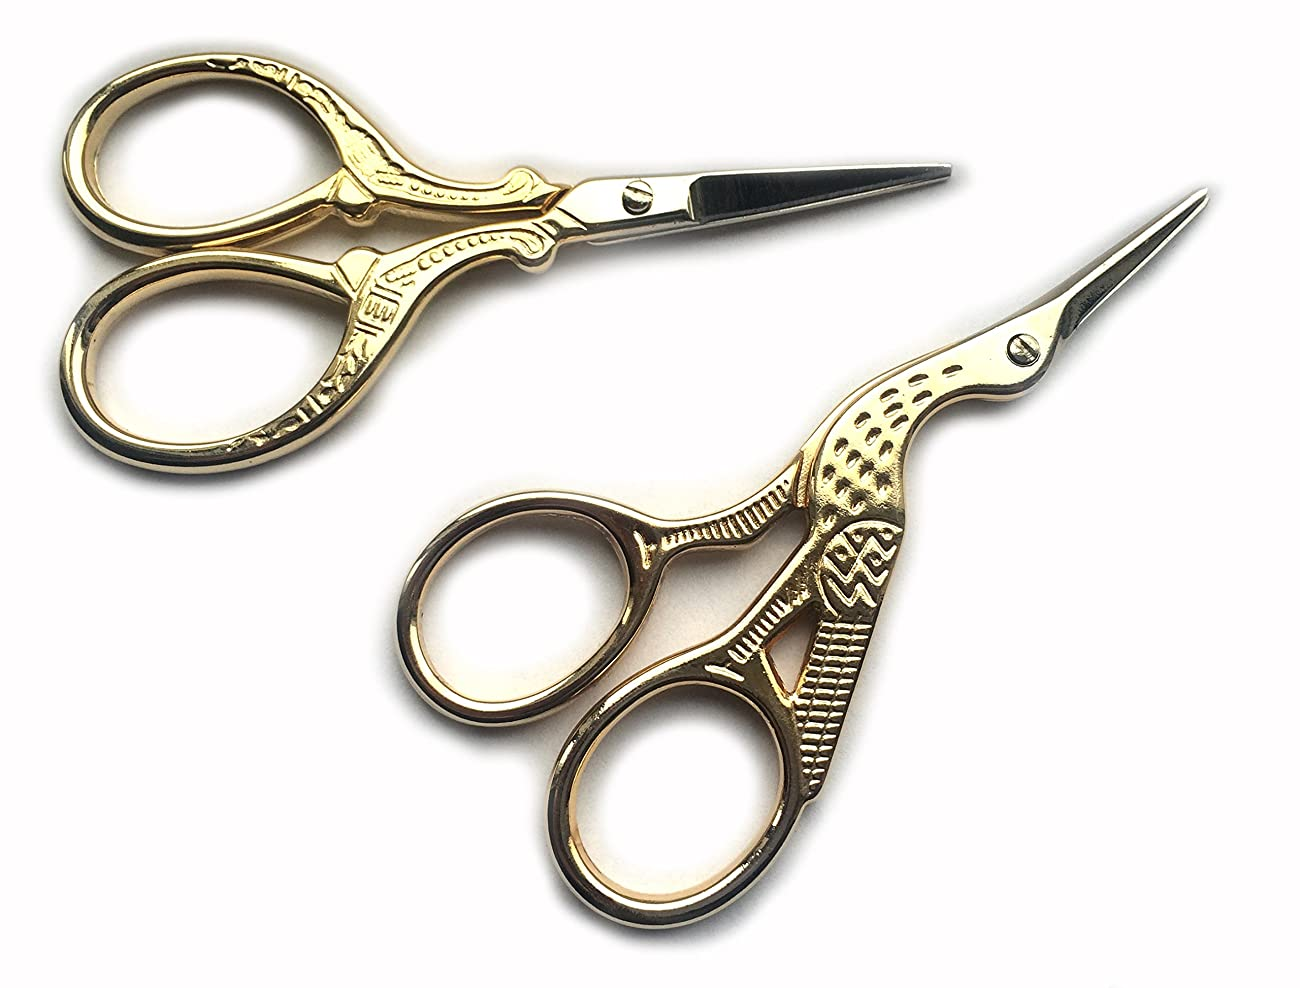 TWO High Quality 3.5 Inch Gold Plated Stainless Steel Scissors for Embroidery, Sewing, Craft, Art Work & Everyday Use - Ideal as a Gift 4